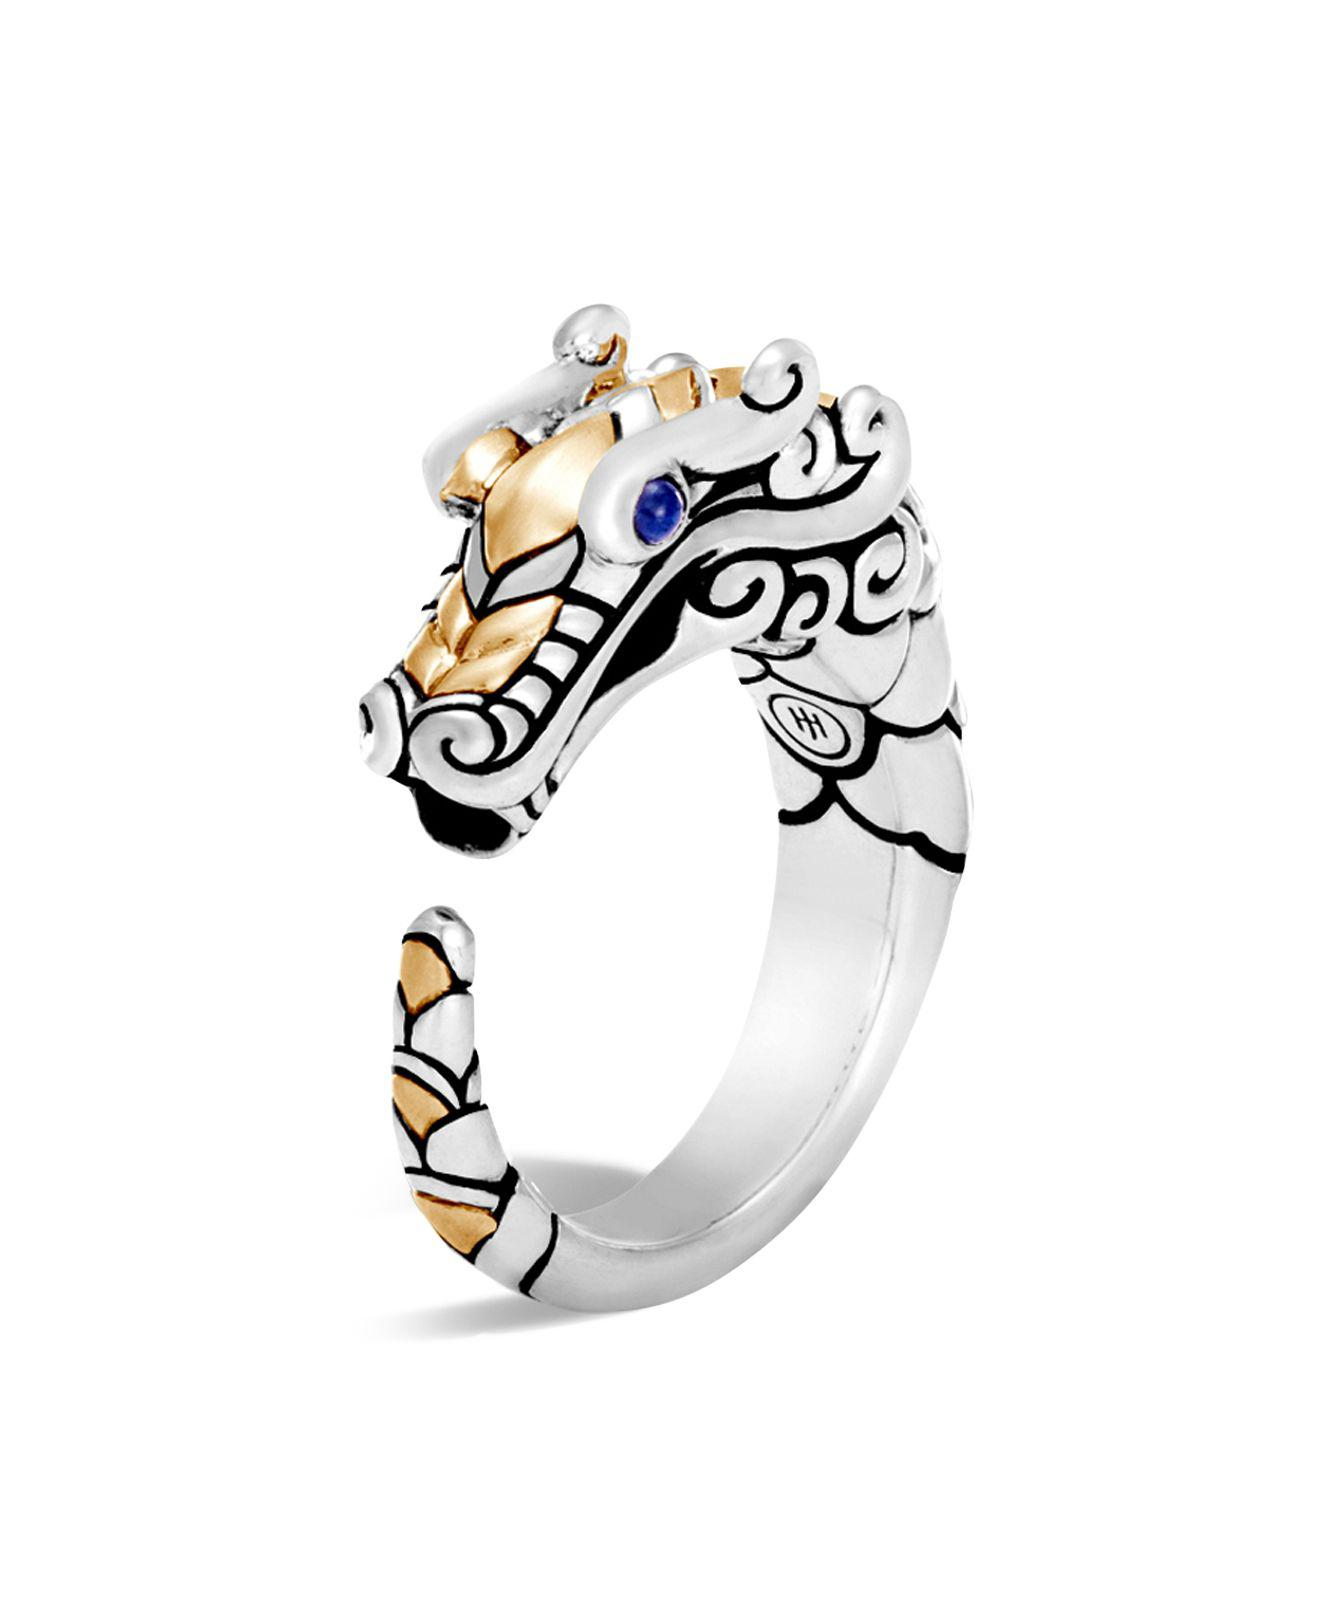 John Hardy Legends Naga 18K Gold & Silver Ring with Sapphires KF8W9fZHkE